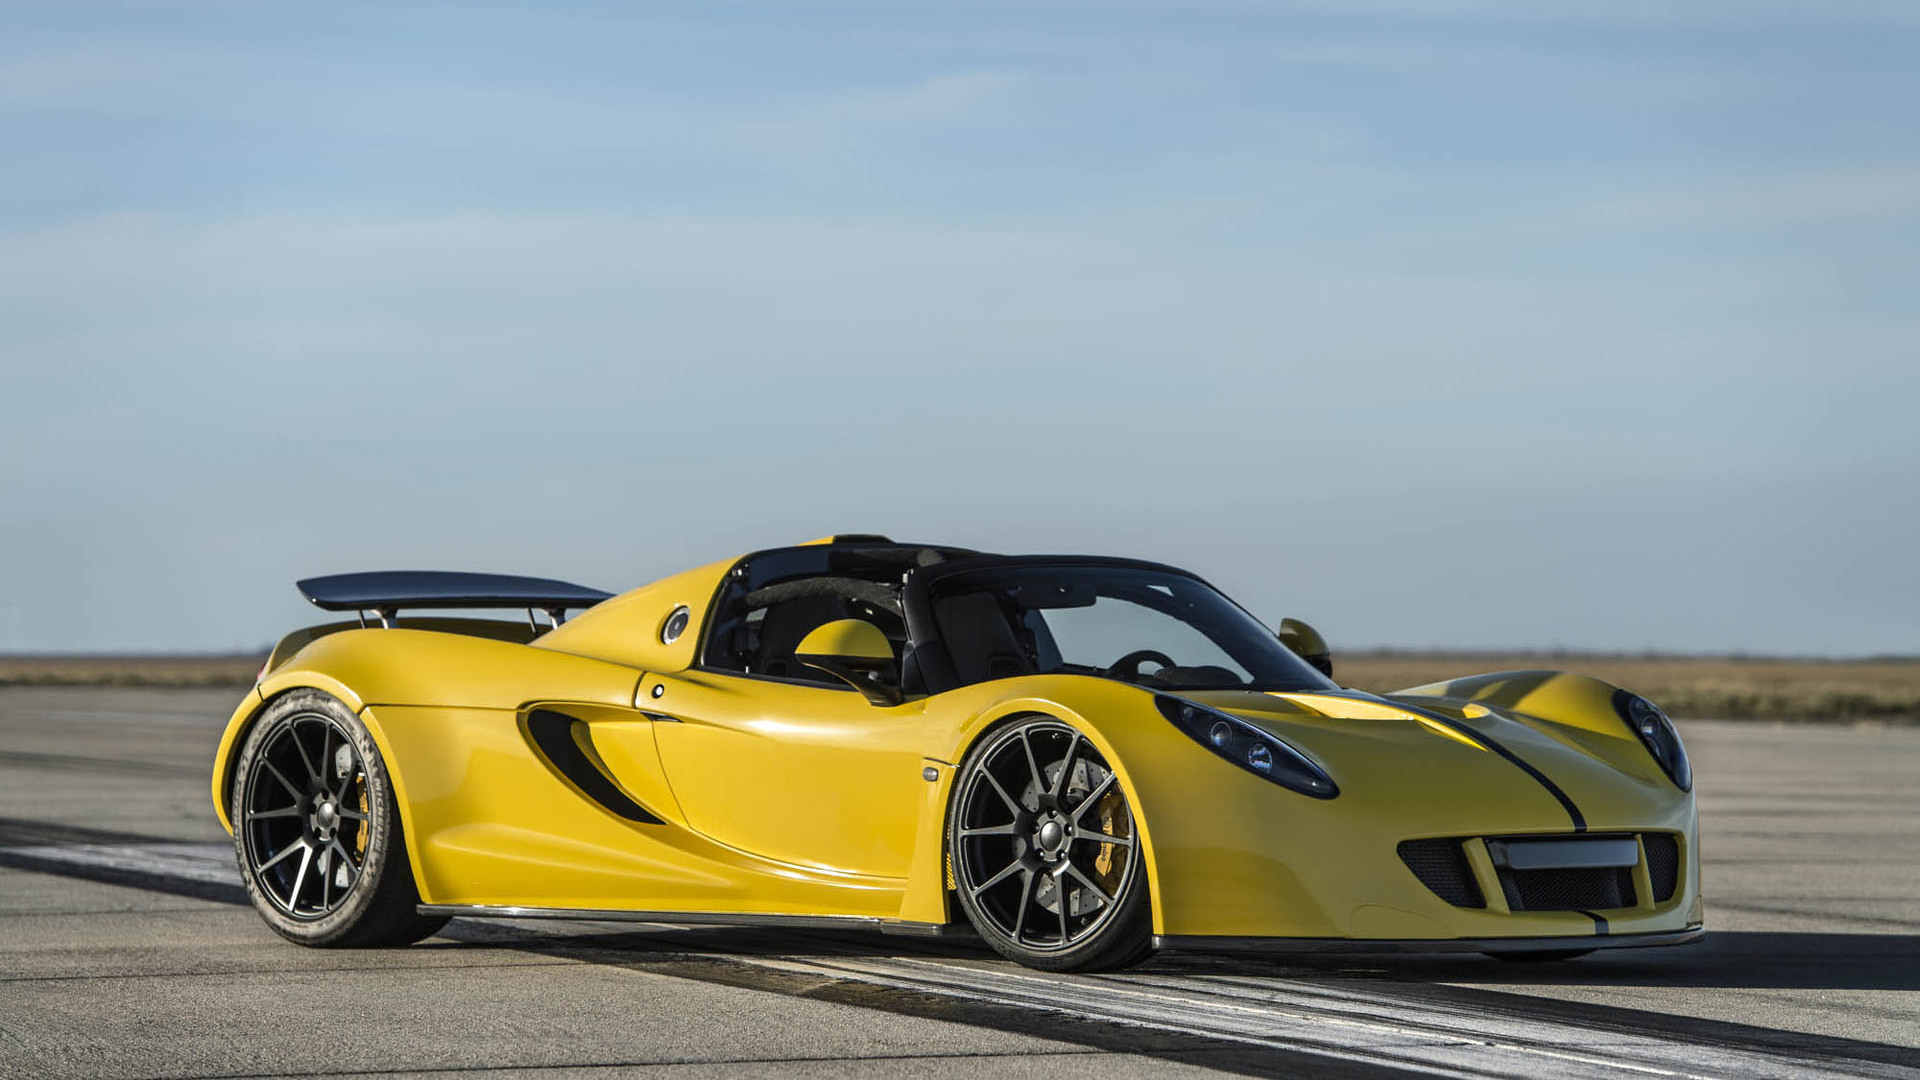 Hennessey Venom Gt Spyder Becomes The Worlds Fastest Convertible 1995 Honda Civic Transmission Diagram Car Tuning